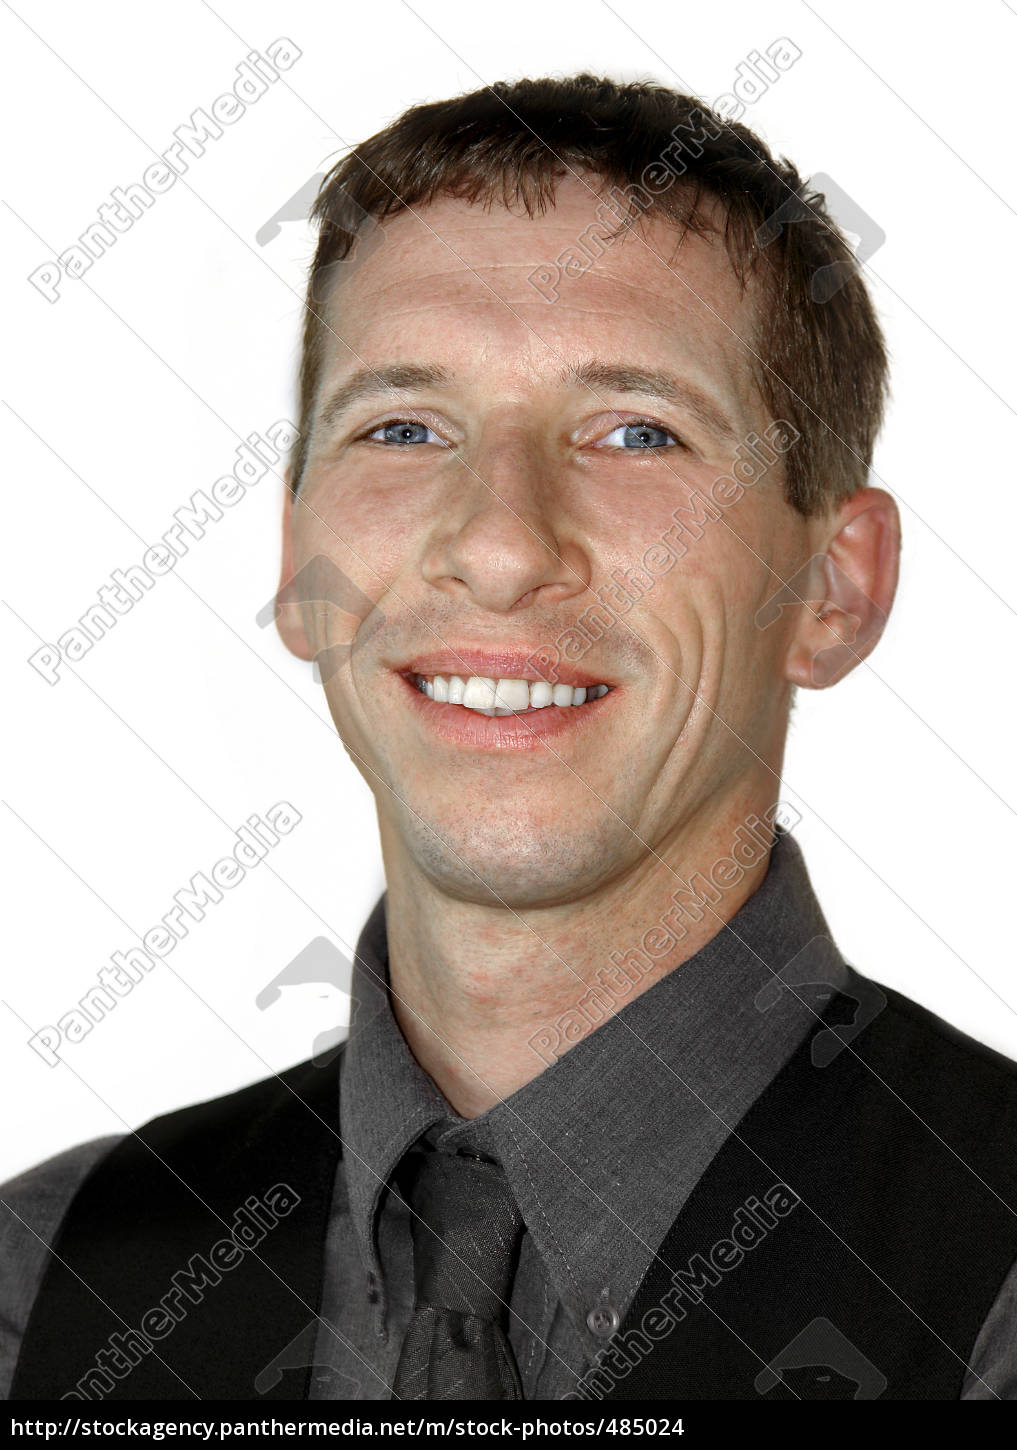 businessman, smiling, happily - 485024